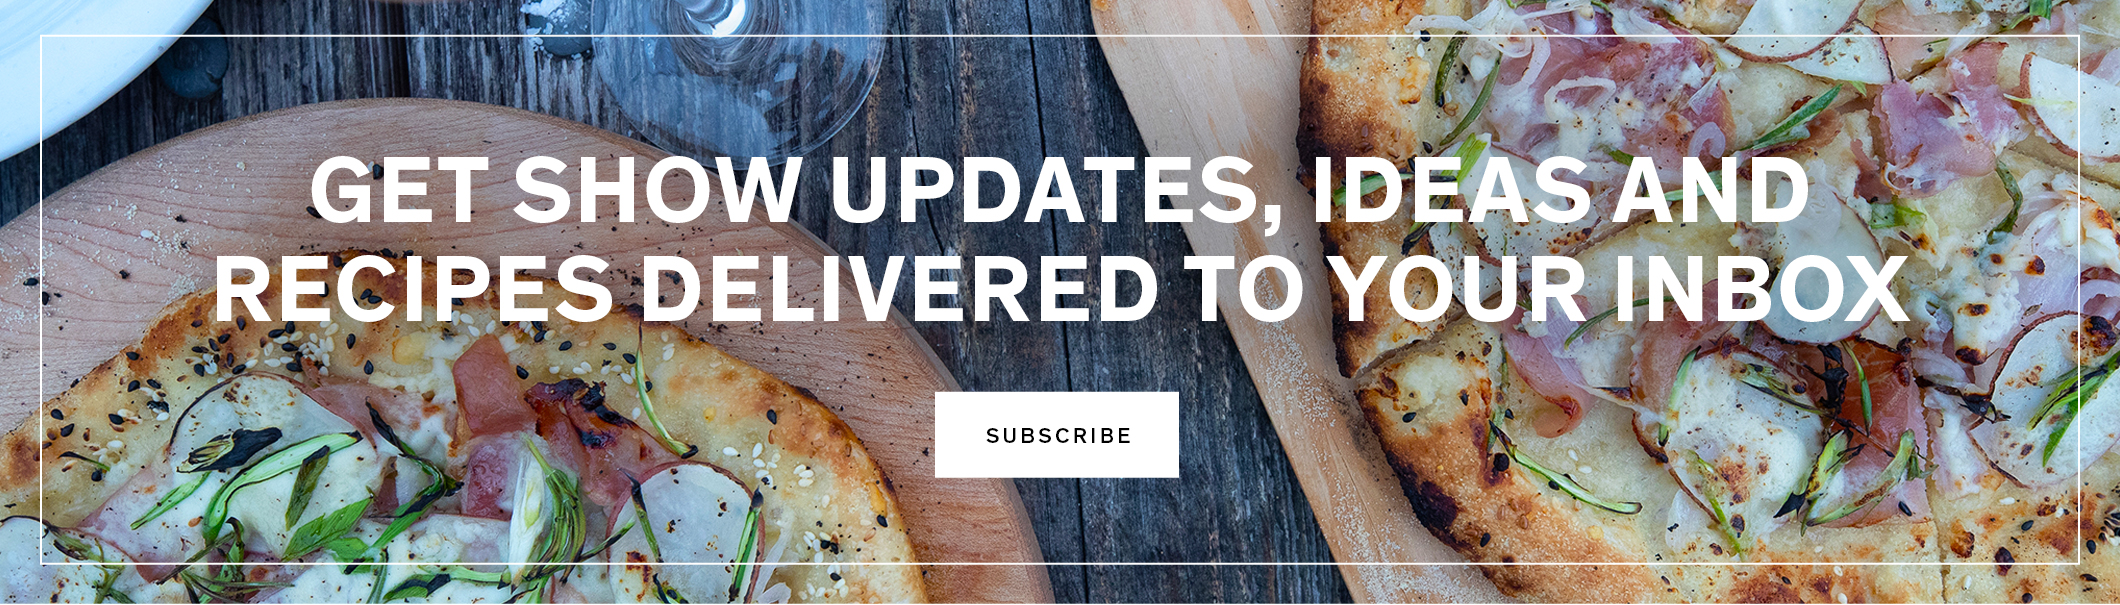 Get show updates, ideas and recipes delivered to your inbox. SUBSCRIBE